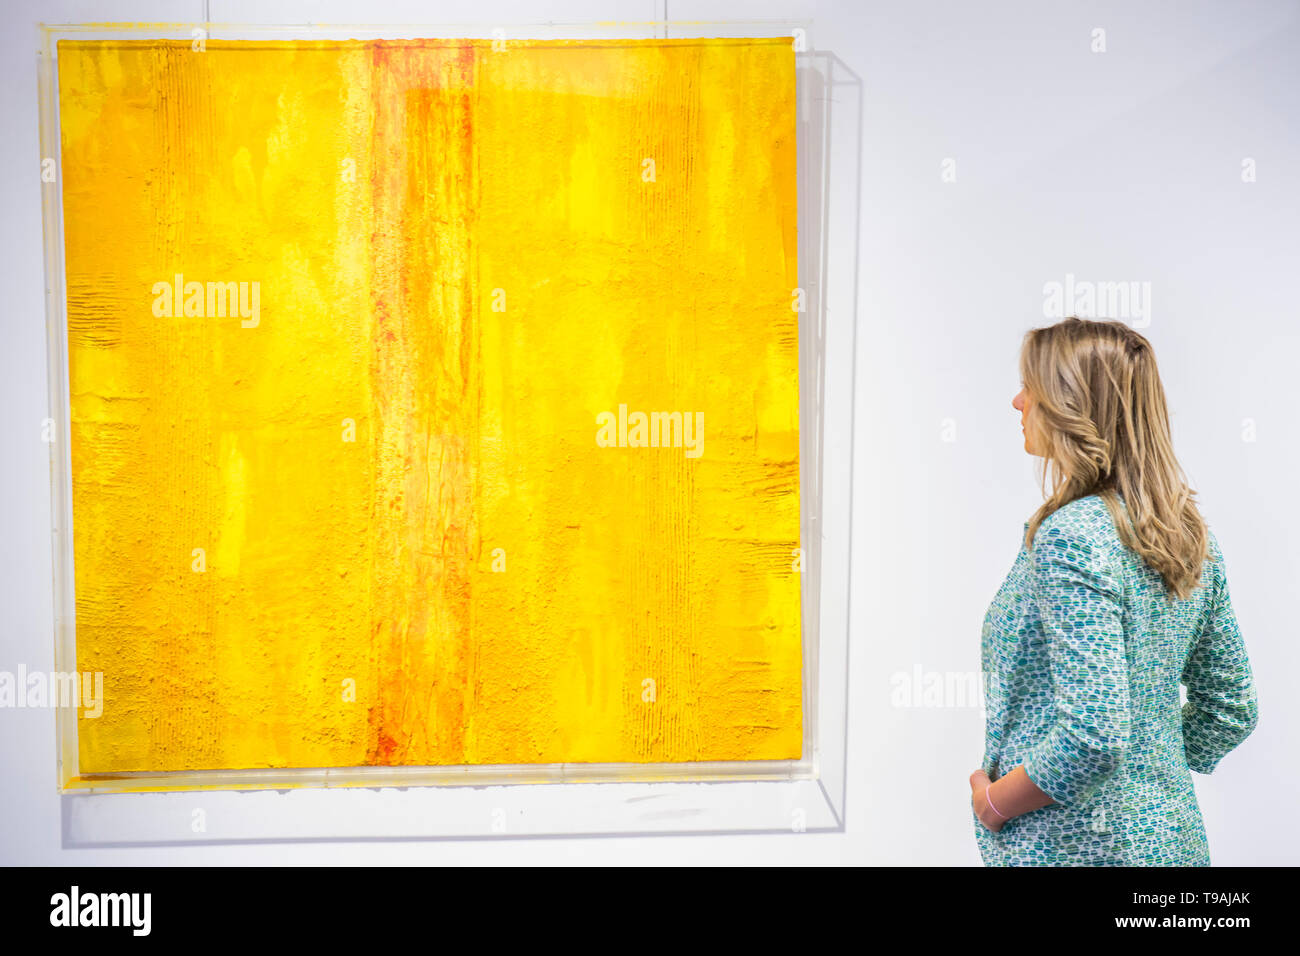 London, Uk. 17th May 2019. Yellow Giallo 2016 by Marcello  Lo Giudice - Spaziale! at Opera Gallery London. Organised in collaboration with the Italian Embassy in London, the exhibition includes 40 iconic canvases by Lucio Fontana, Agostino Bonalumi and Enrico Castellani among others. Credit: Guy Bell/Alamy Live News - Stock Image